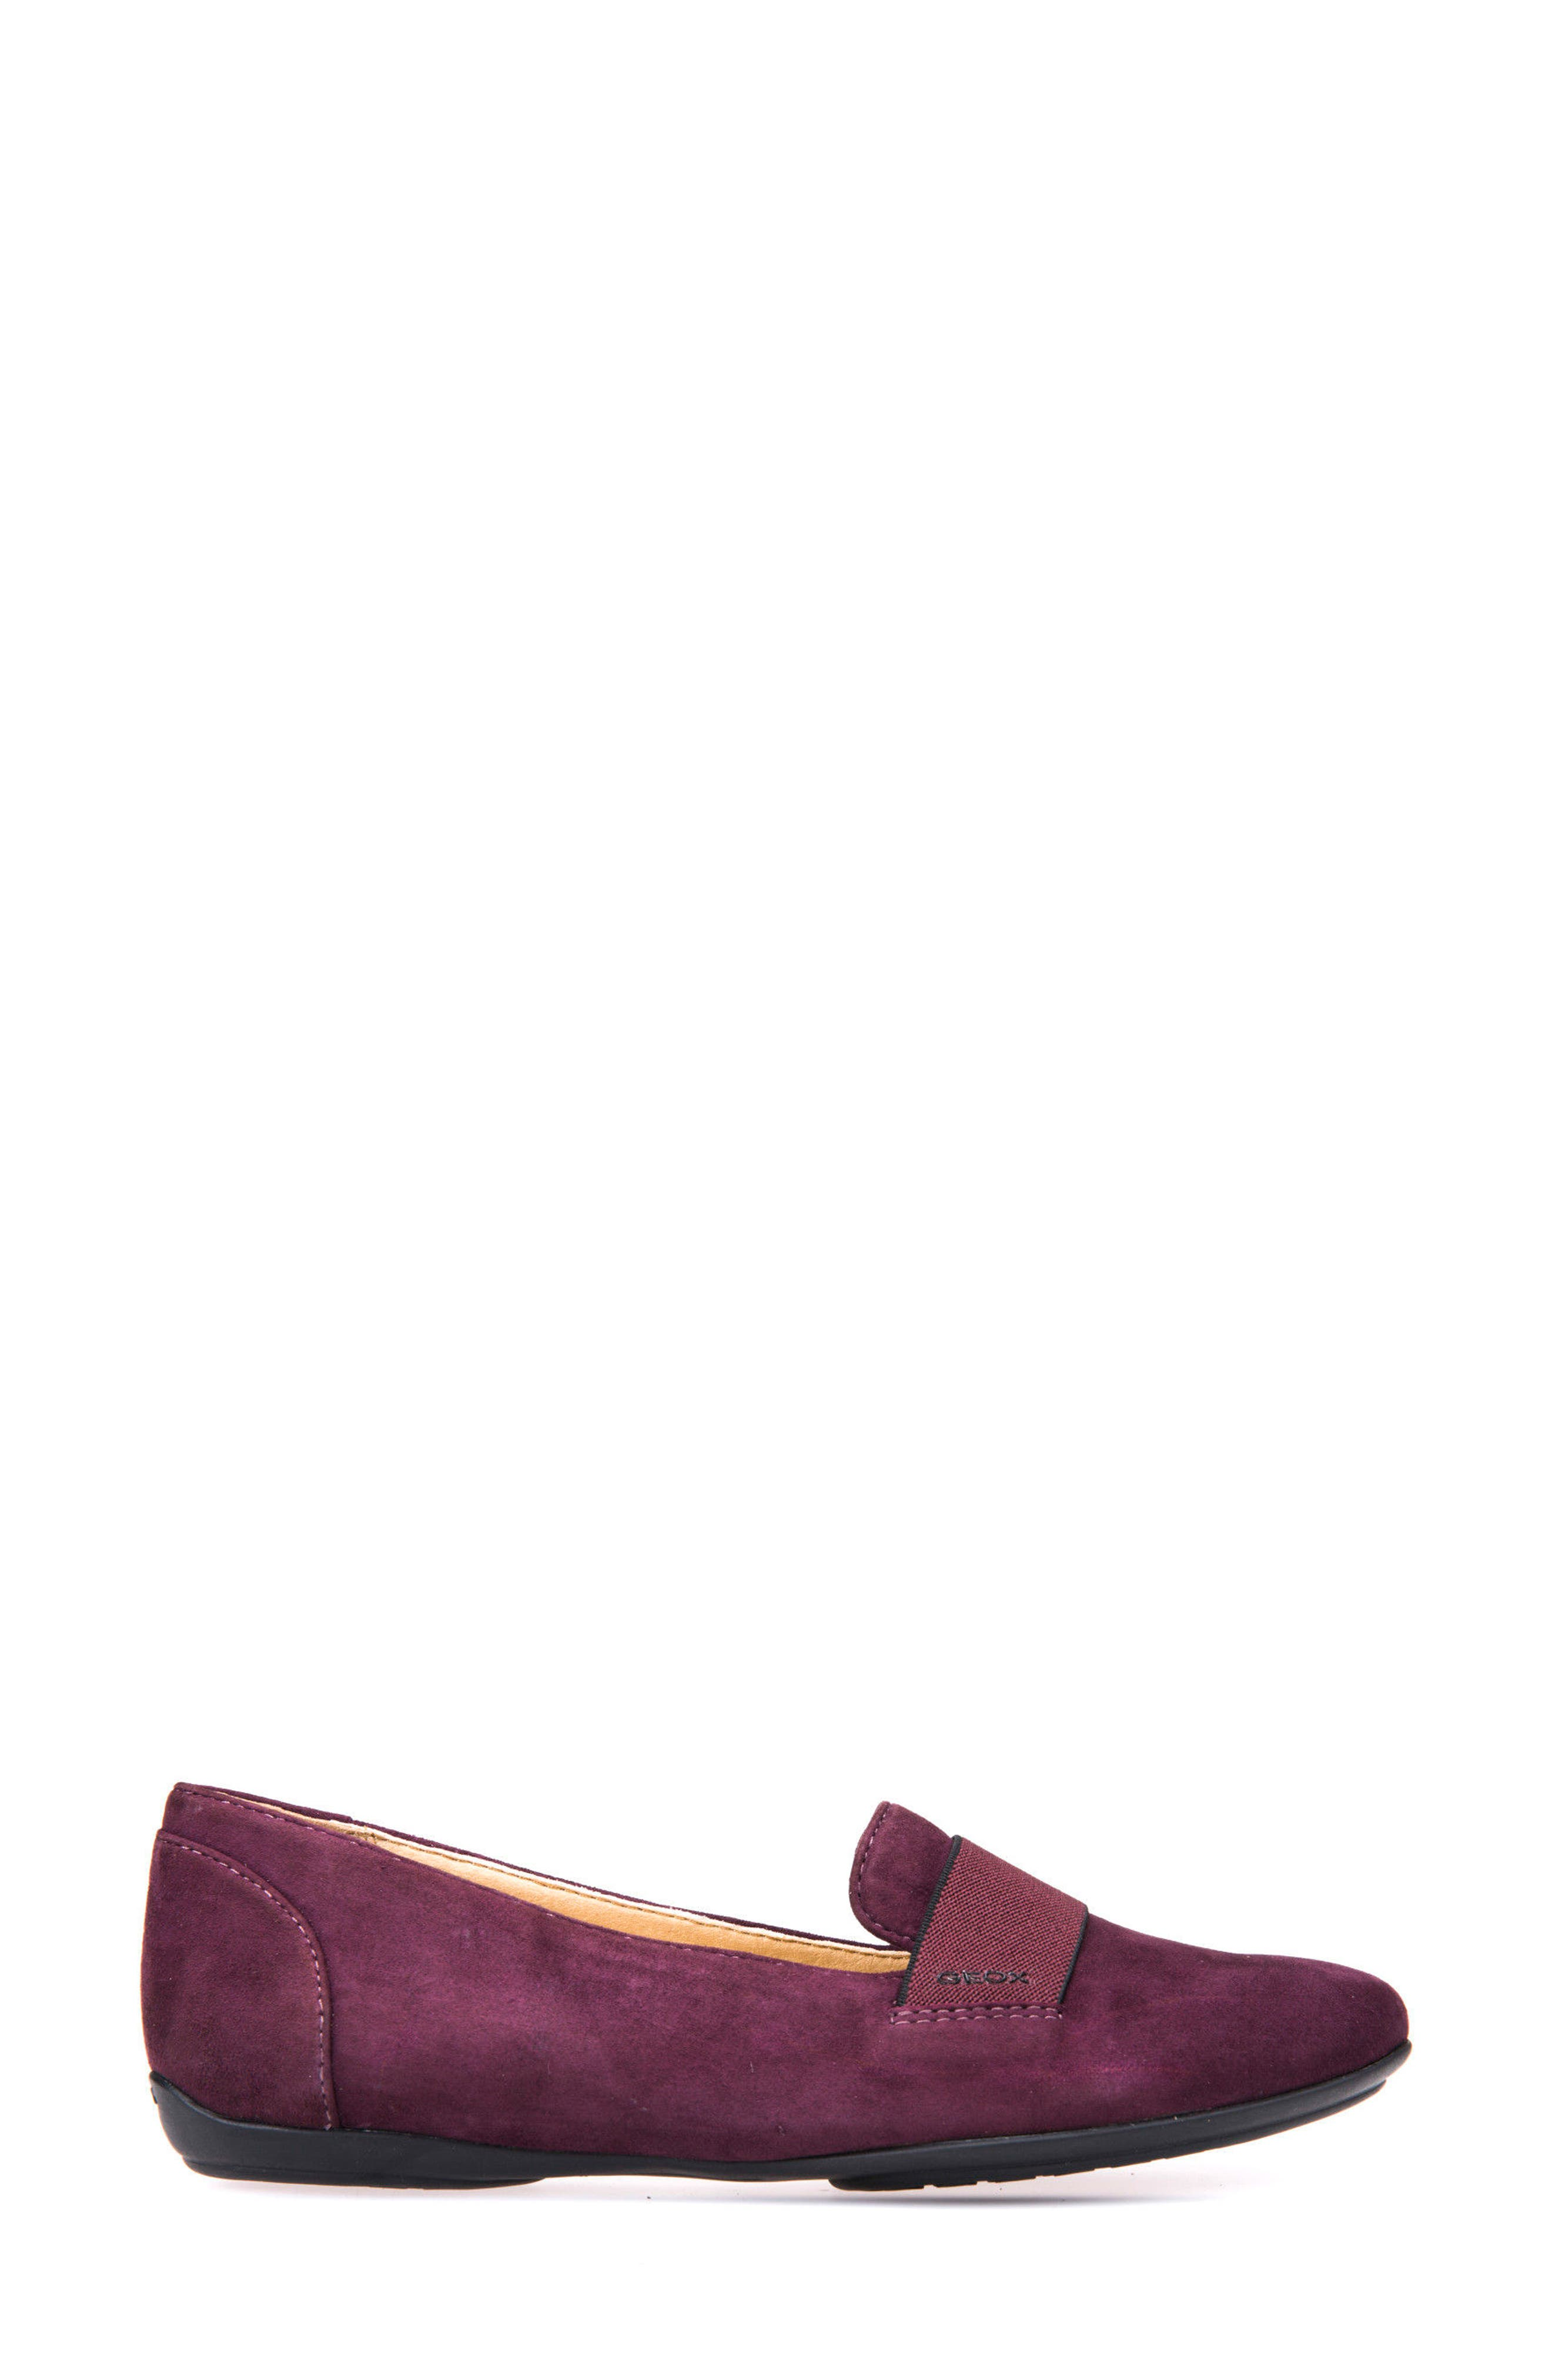 Charlene 17 Flat,                             Alternate thumbnail 3, color,                             Prune Leather